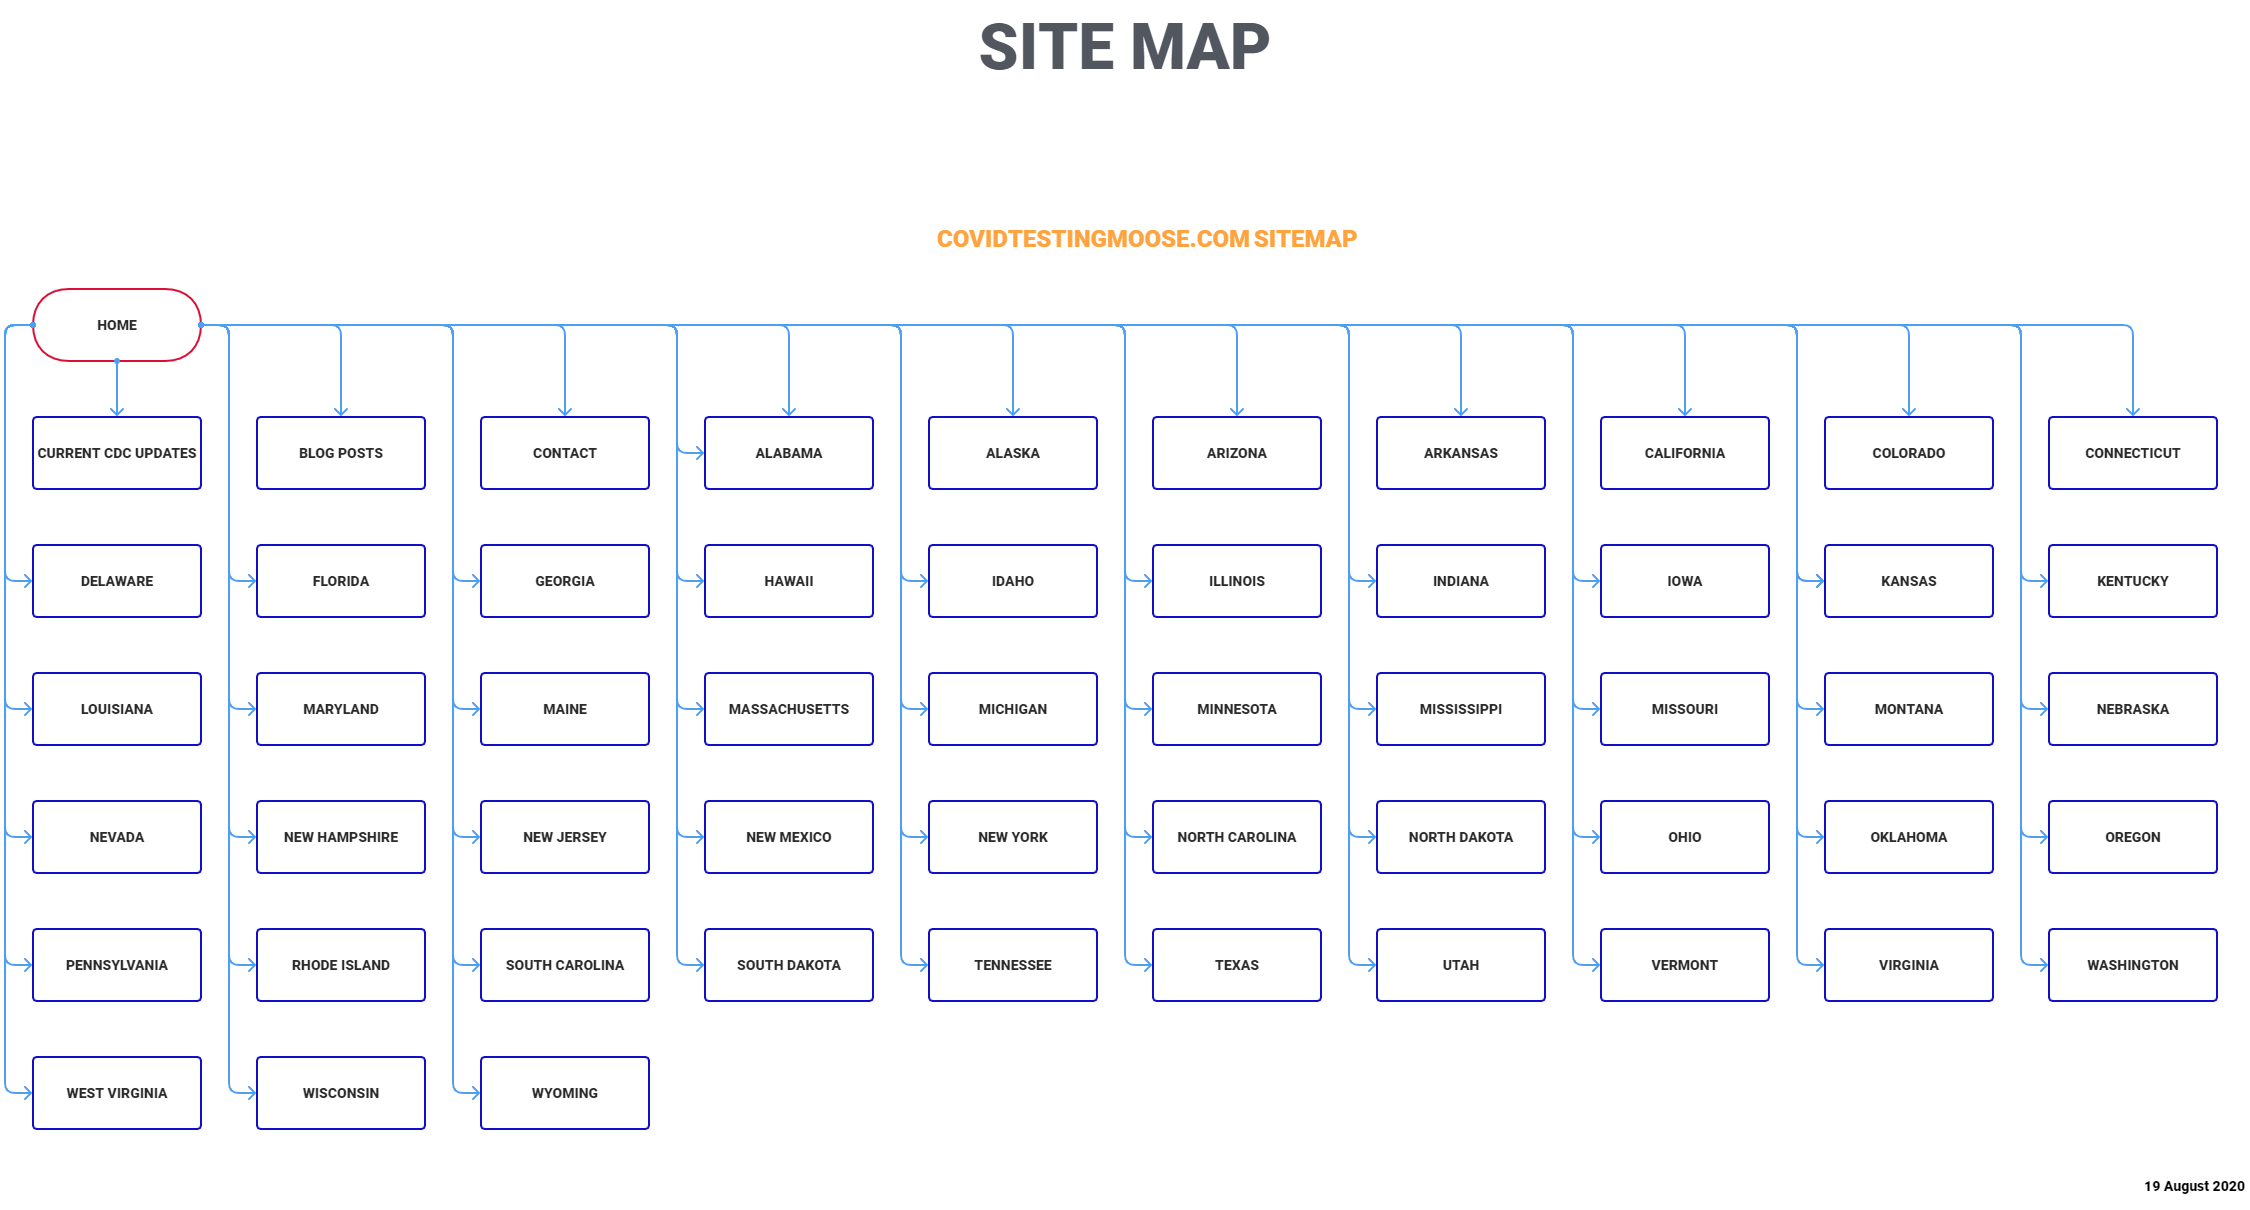 The large size of this sitemap showed me that I would need to install an A-Z Site Index for ease of navigation.